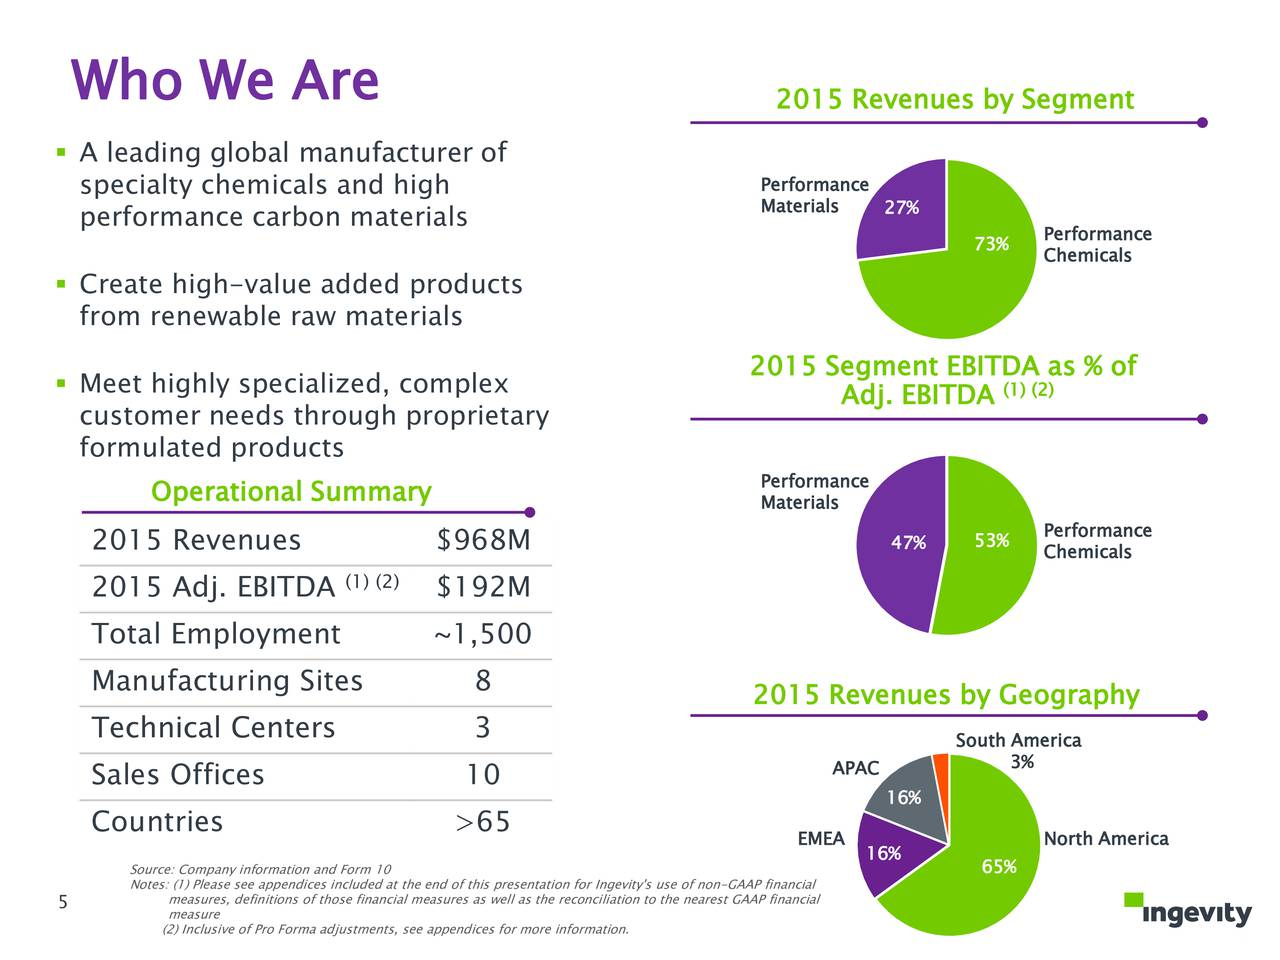 global specialty and high performance films Global specialty and high performance films market was 83 million tons in 2012 and is expected to reach 122 million tons in 2019, growing at a cagr of 57% from 2013 to 2019.